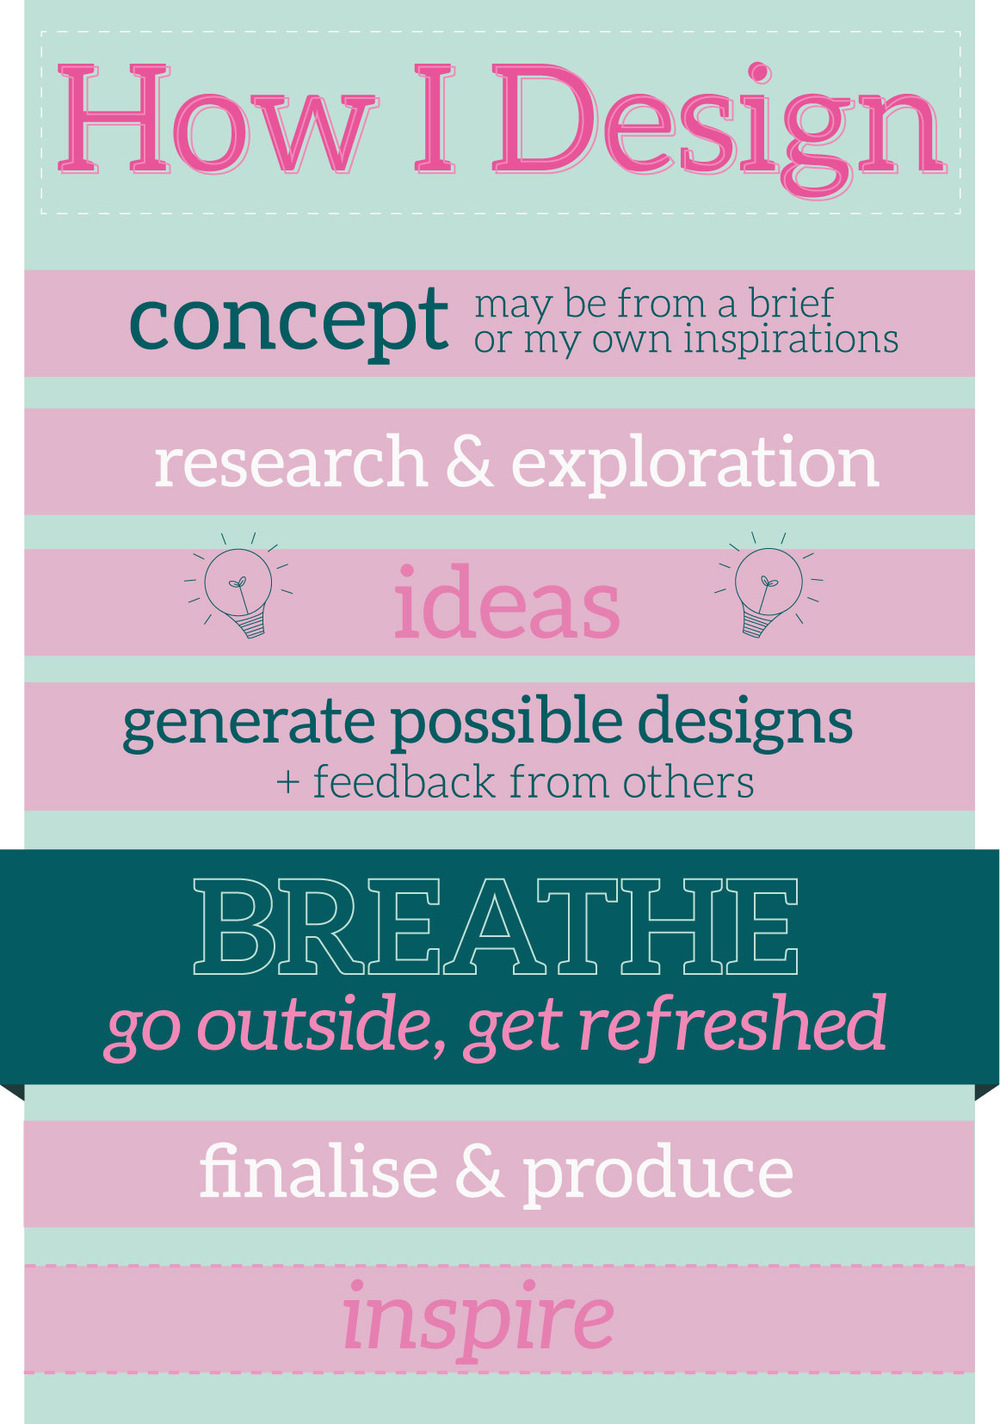 Kimberly Errey - How I Design info-poster